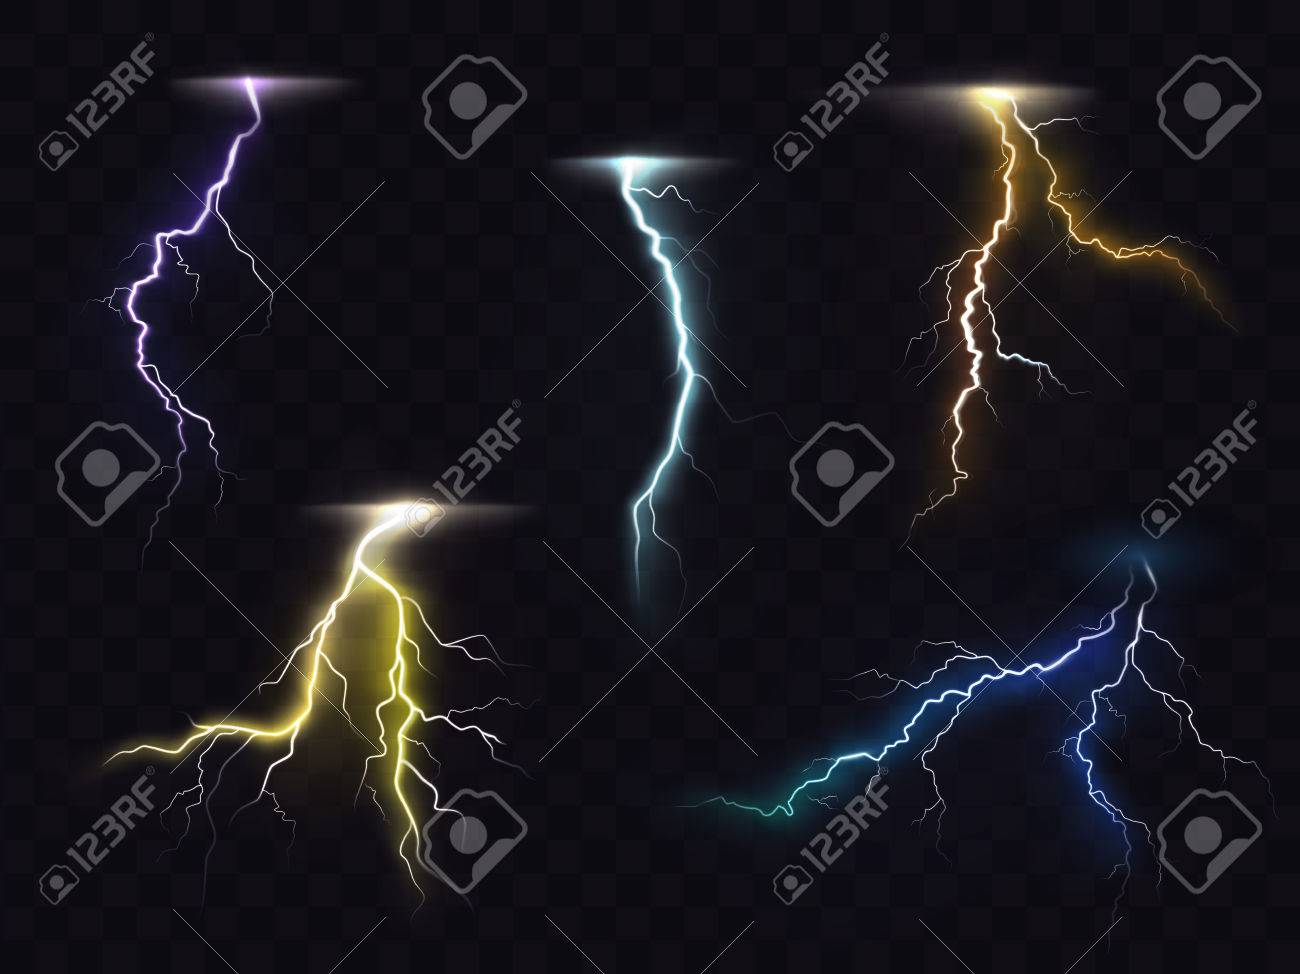 Colored Lightning Bolt Vector Set On Transparent Background